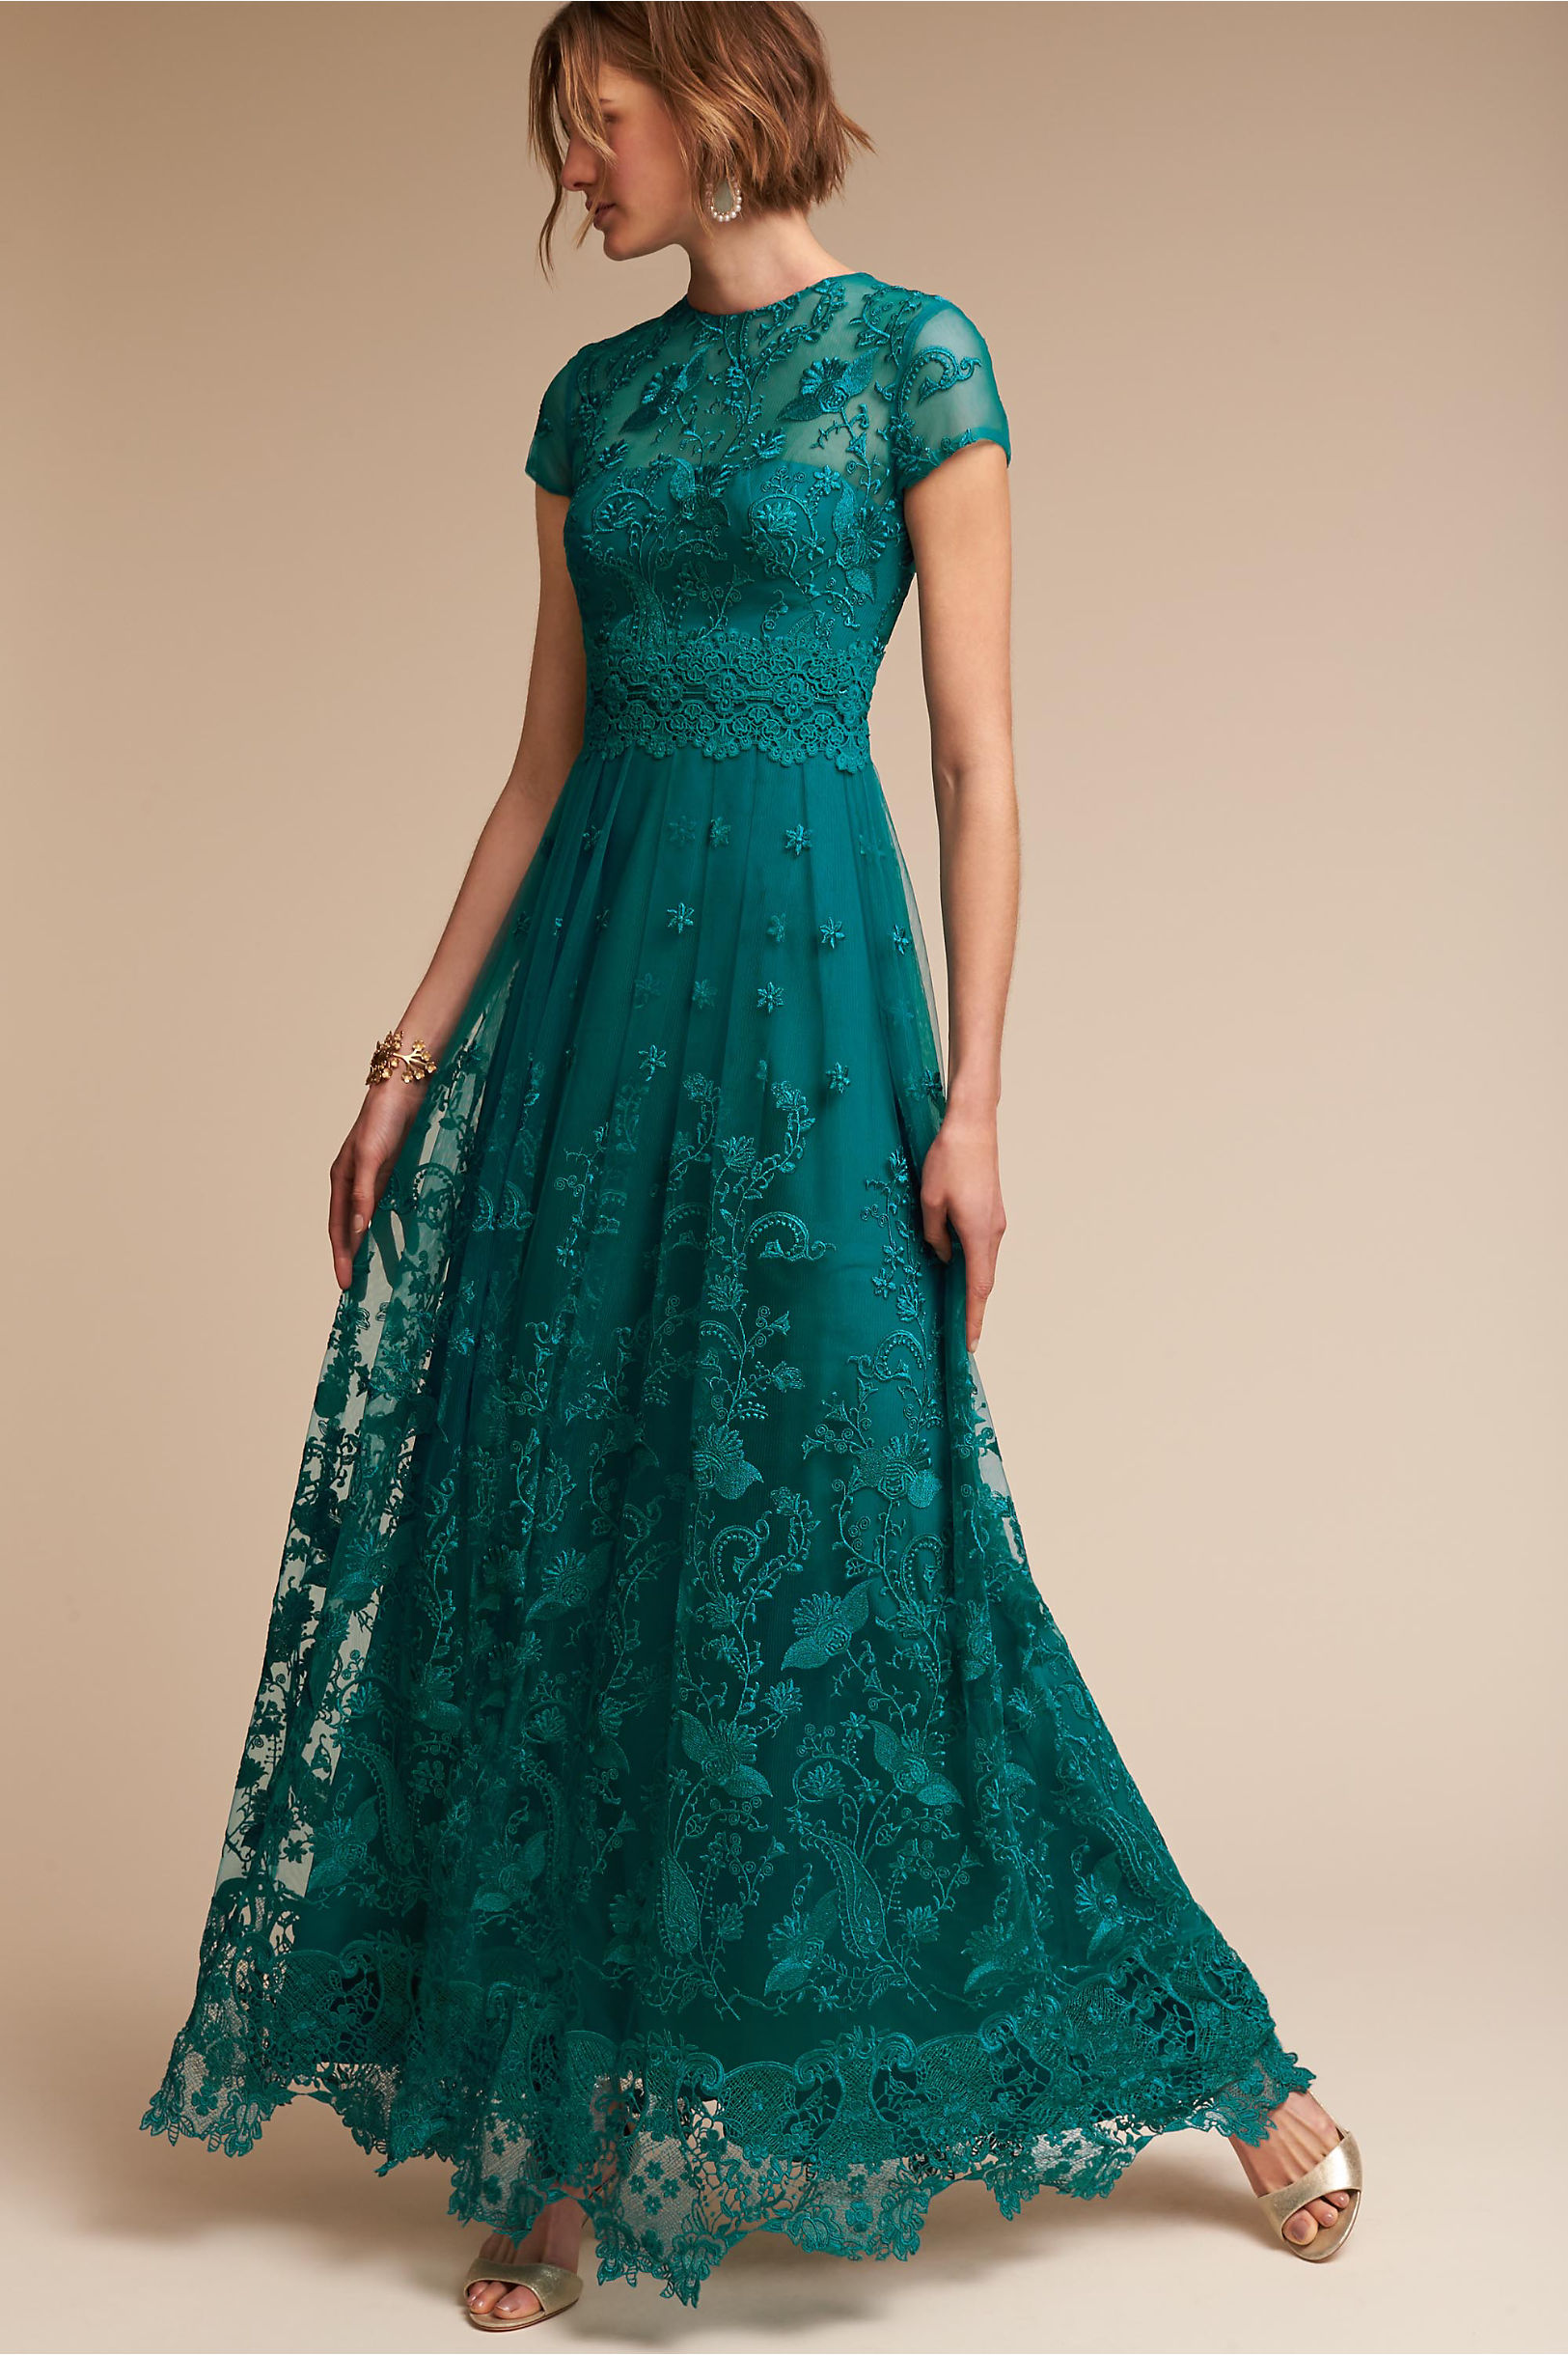 Shauna Dress Teal in Occasion Dresses | BHLDN